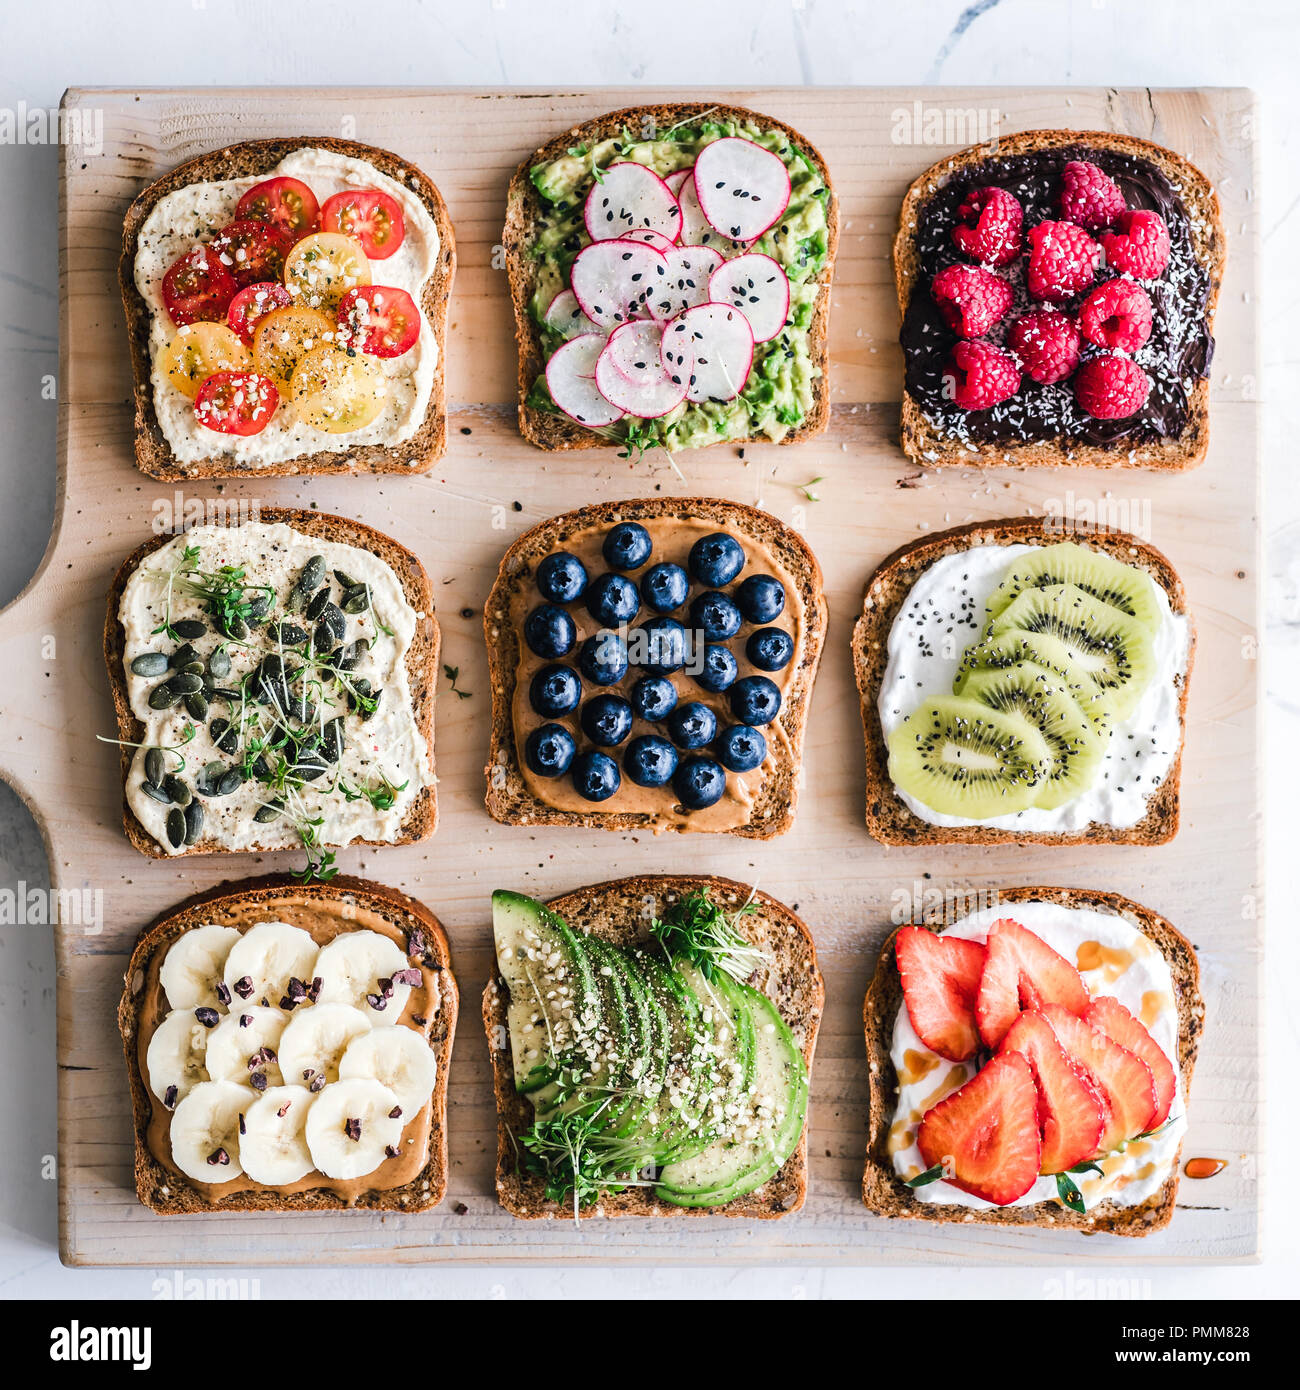 Slices of toast with a variety of healthy toppings - Stock Image